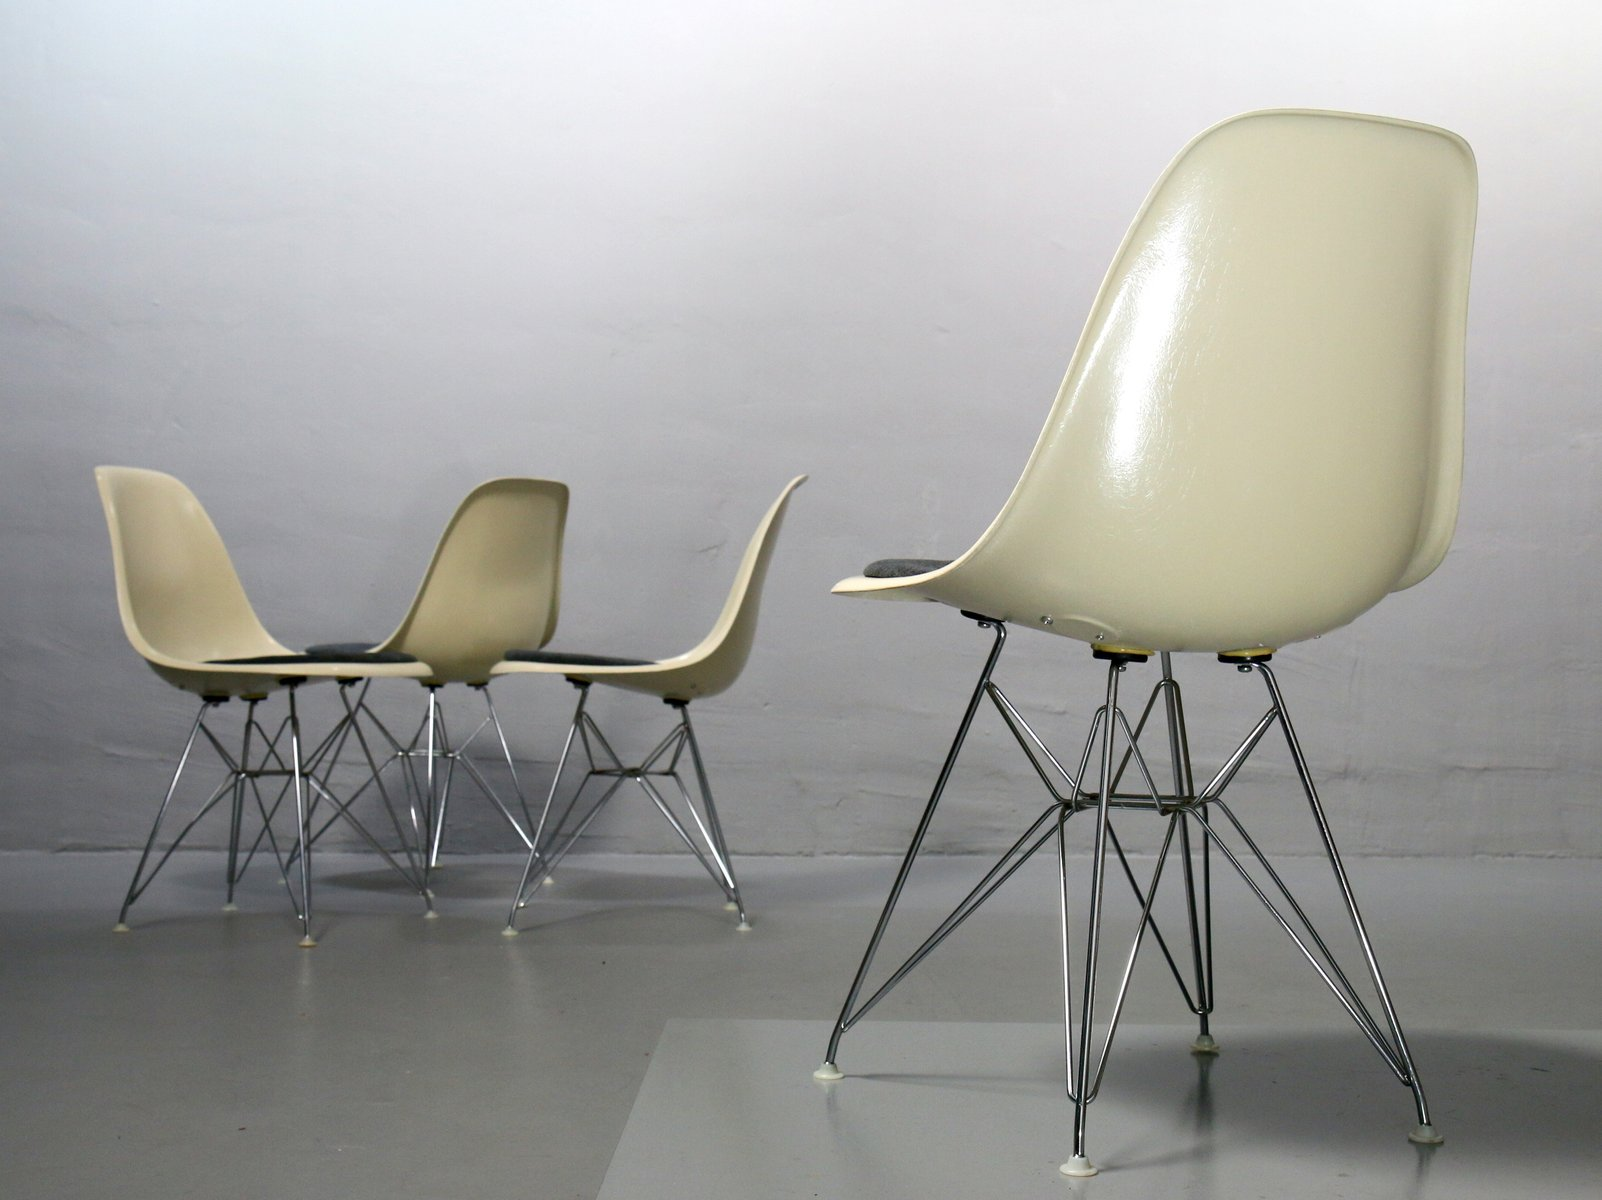 Vintage side chair by charles ray eames for vitra for for Eames side chair nachbau